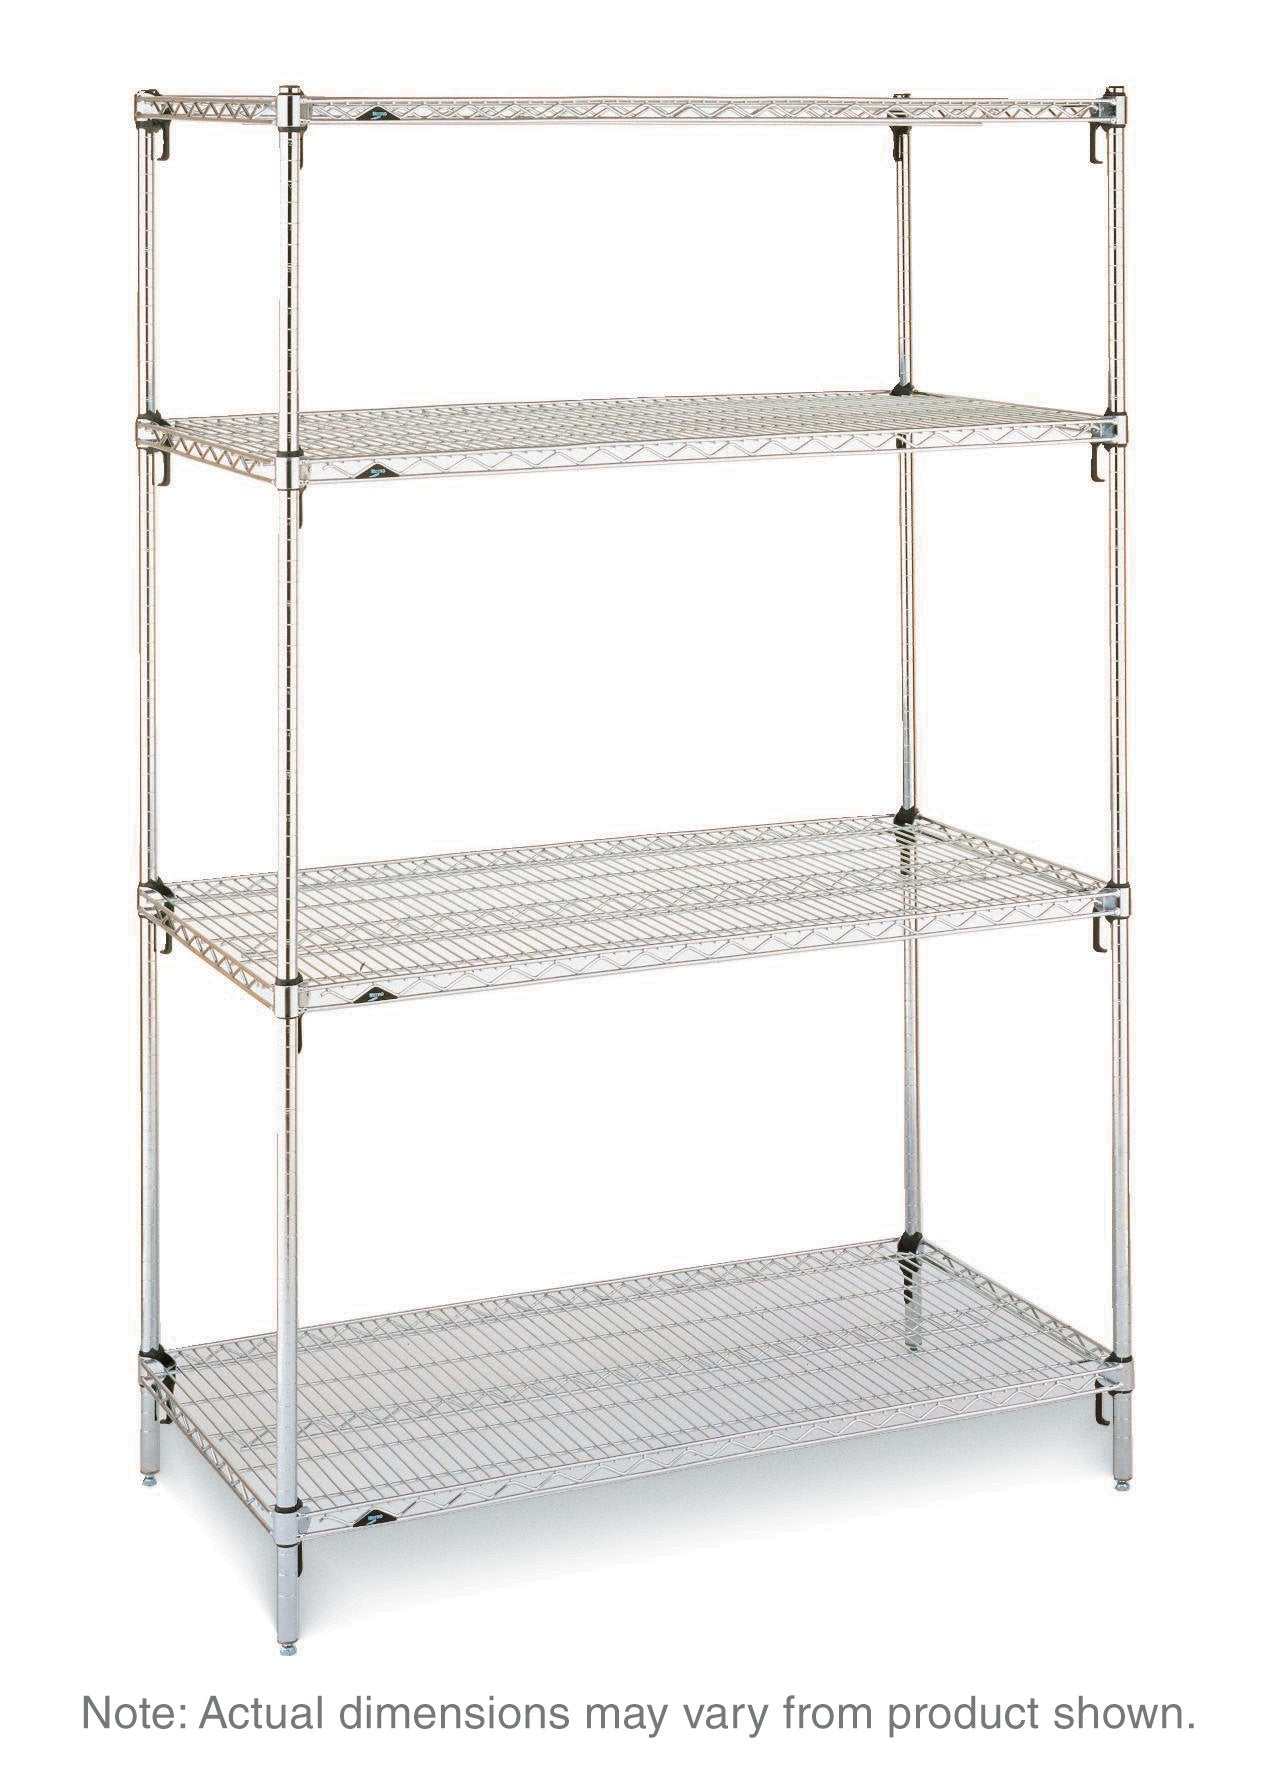 Super Adjustable Stationary Shelving Unit - 4 Shelves